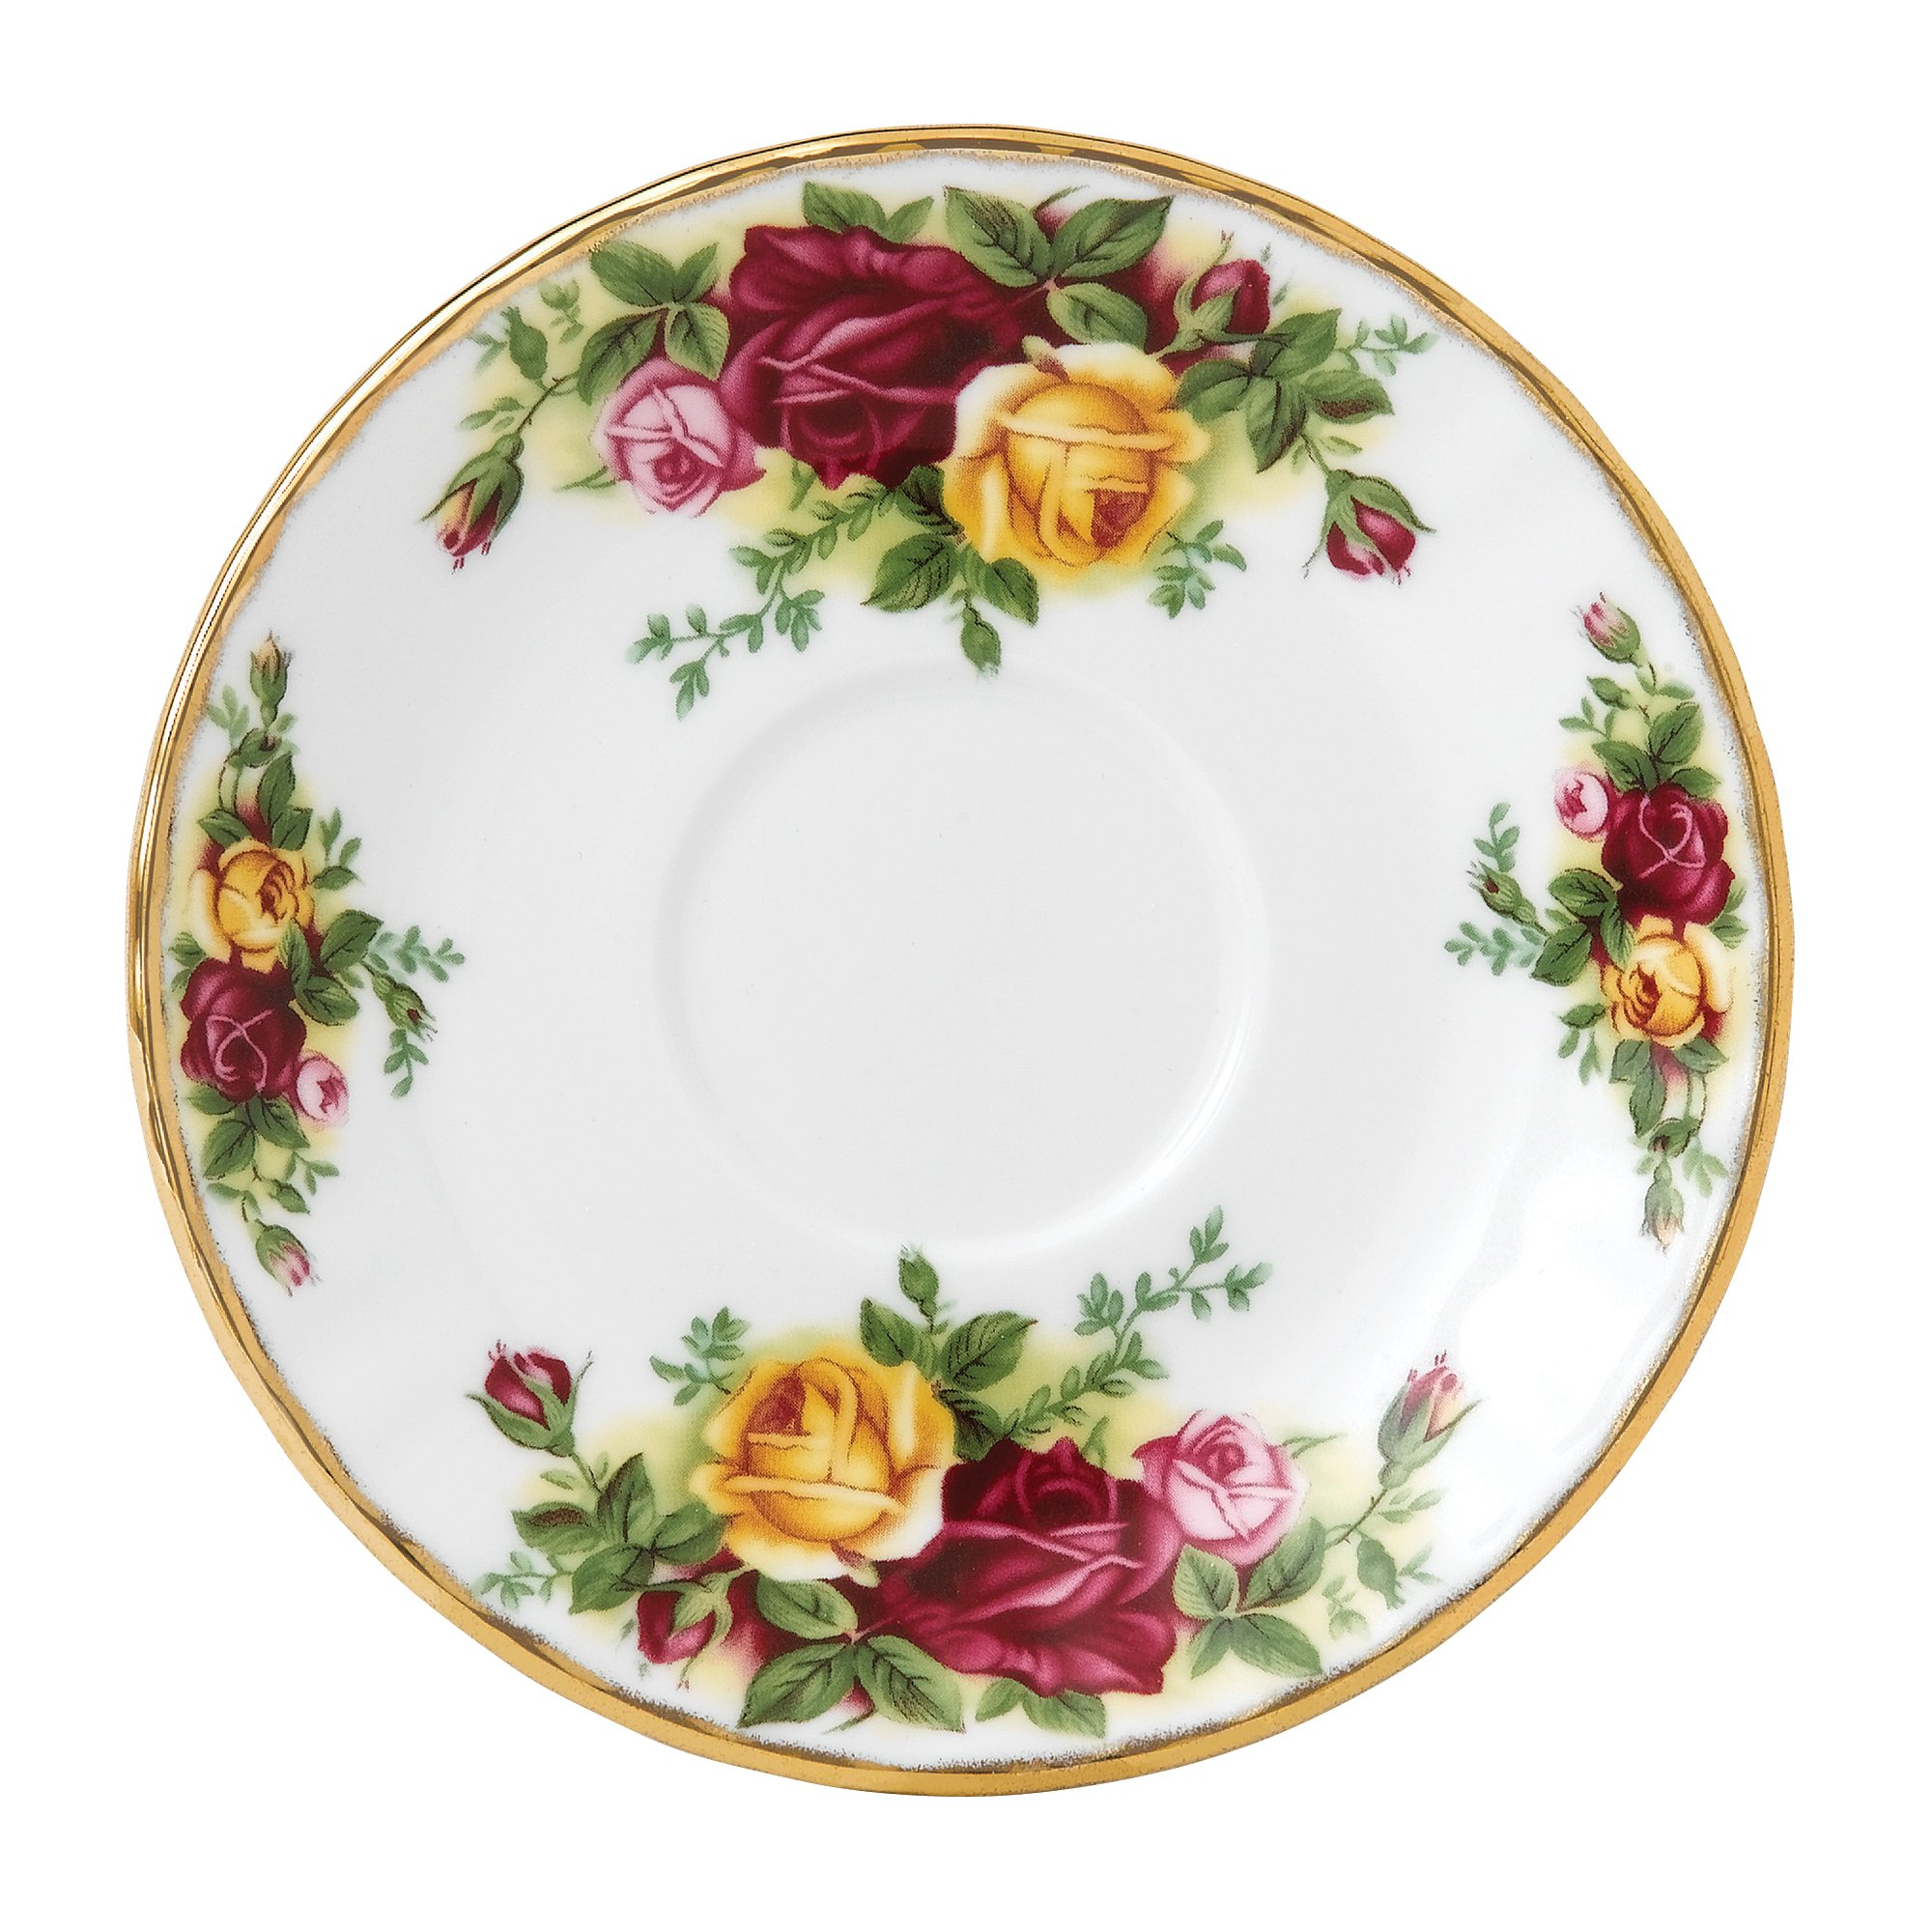 Royal Albert Old Country Roses 5-inch Espresso Saucer